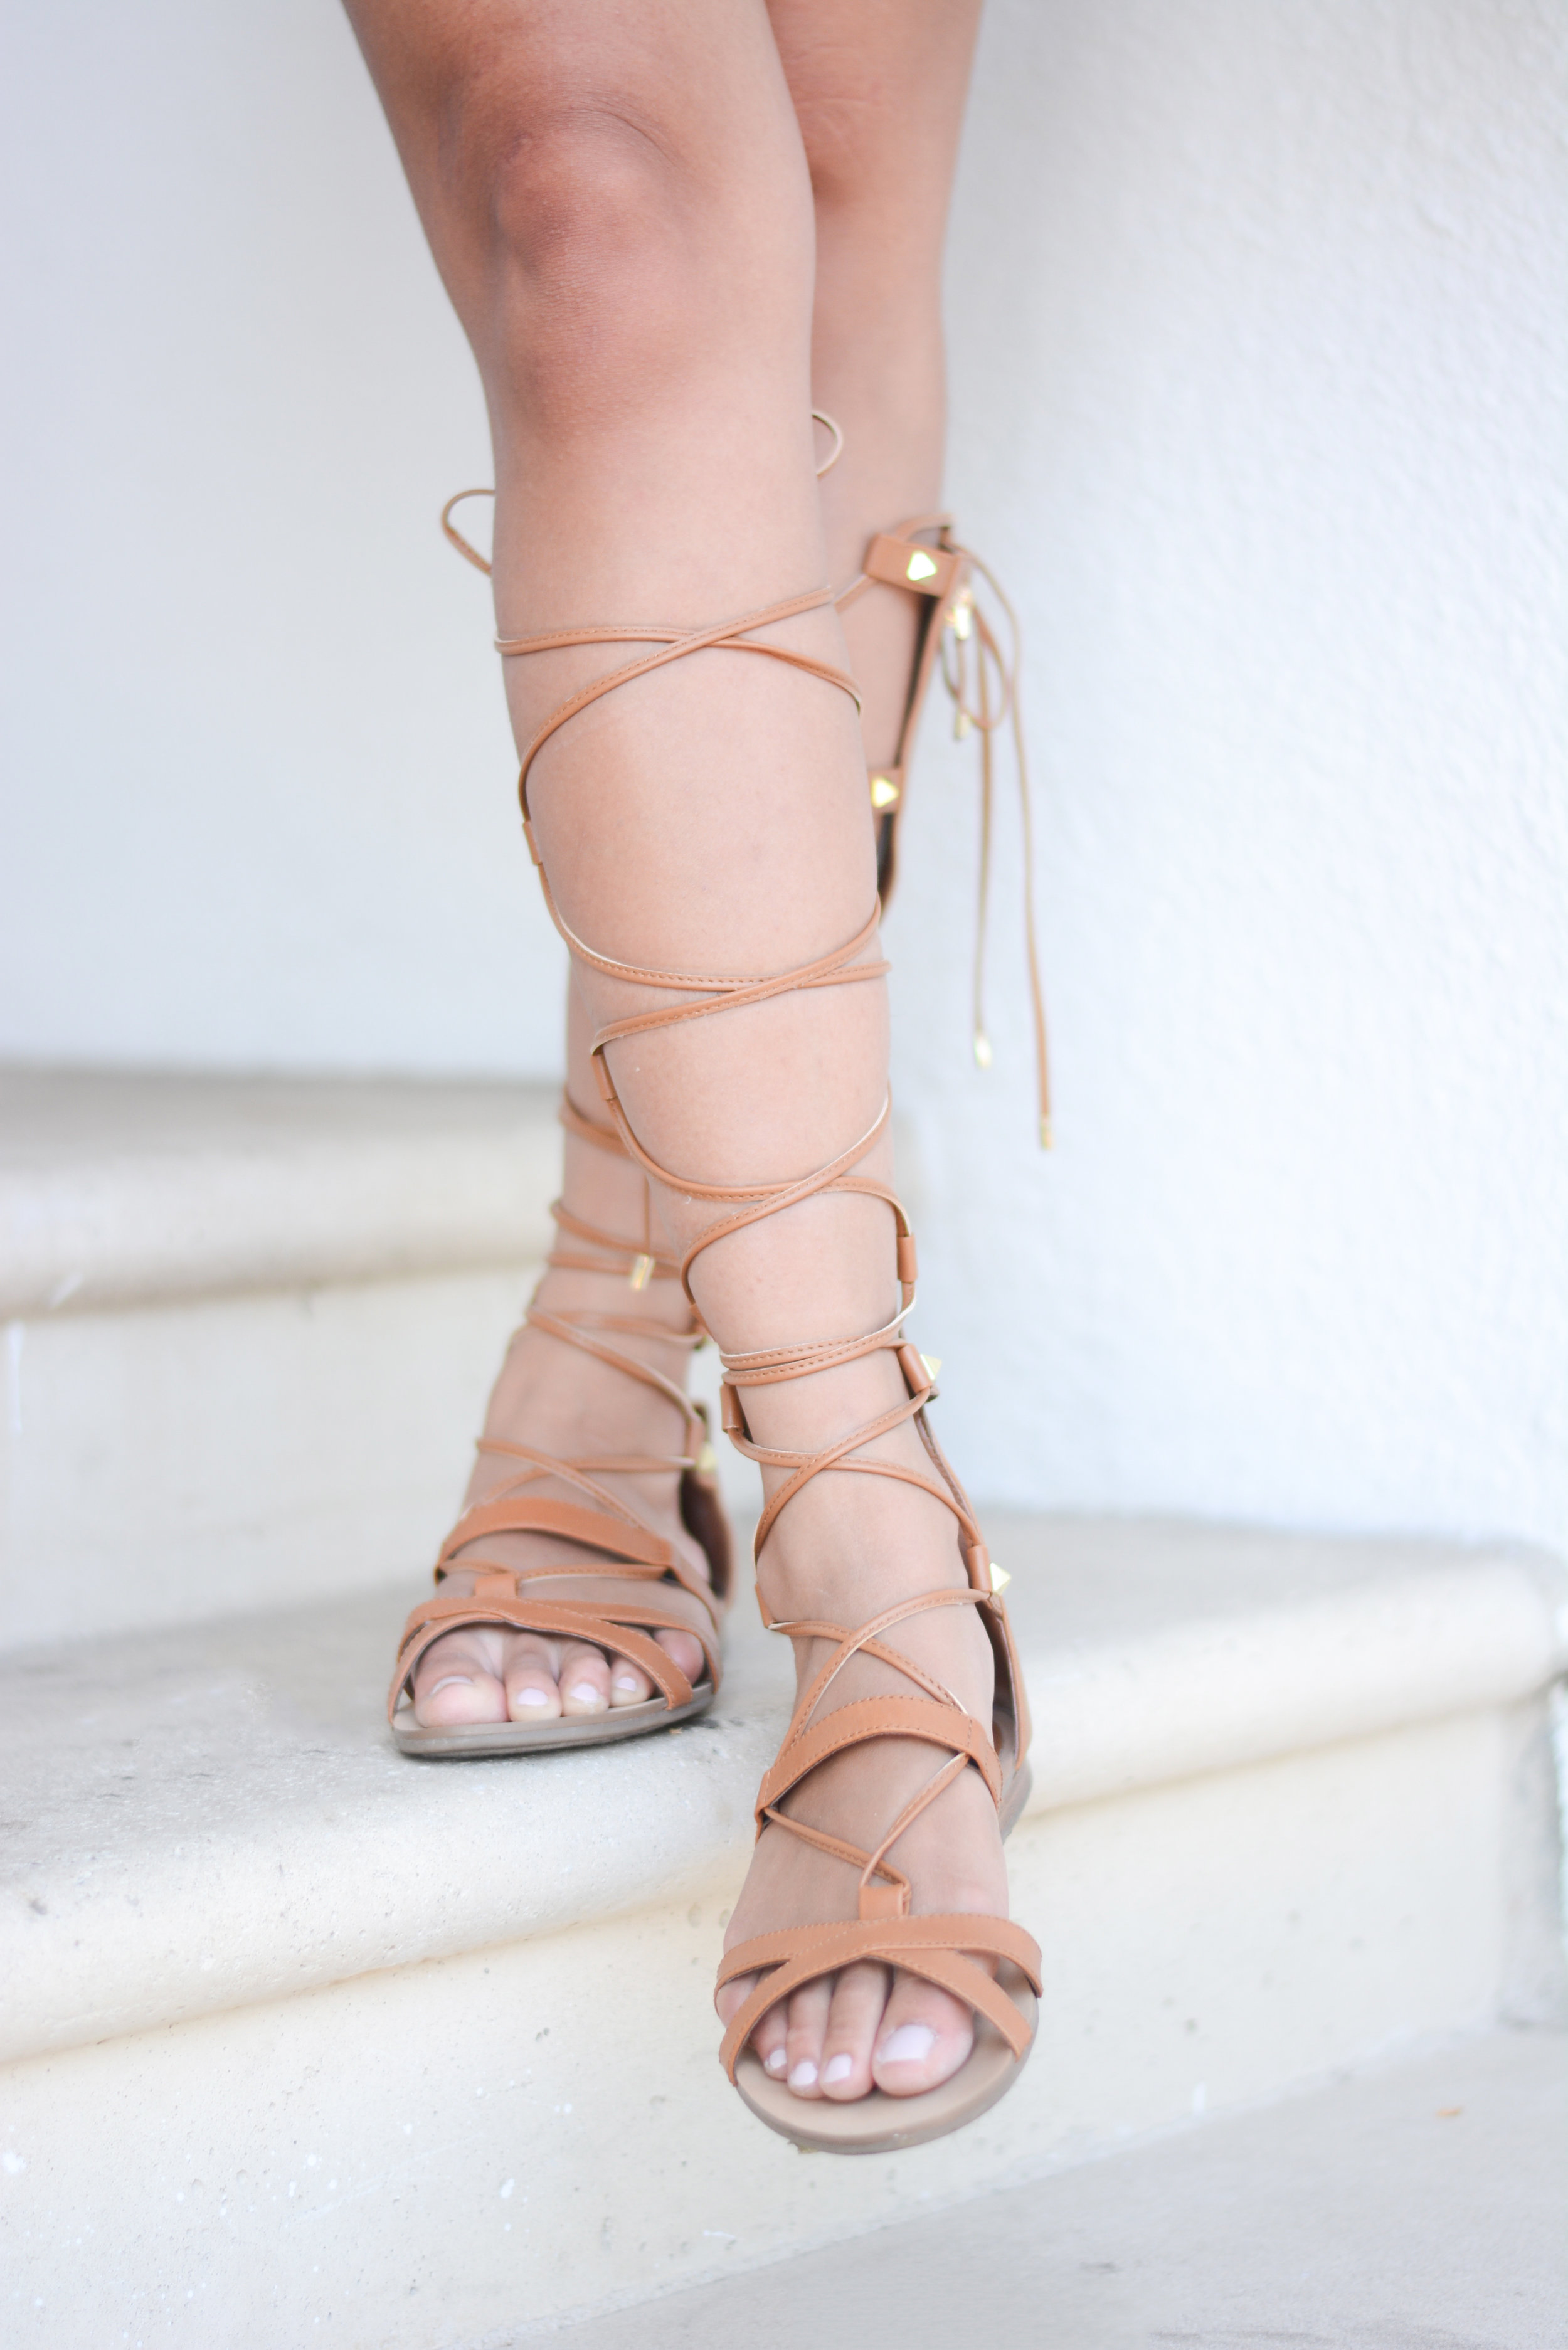 Speaking of deals! Check out the links below to shop our new obsession. Our lace-up sandals were some items we recently picked up and not only are they cute, they're affordable.